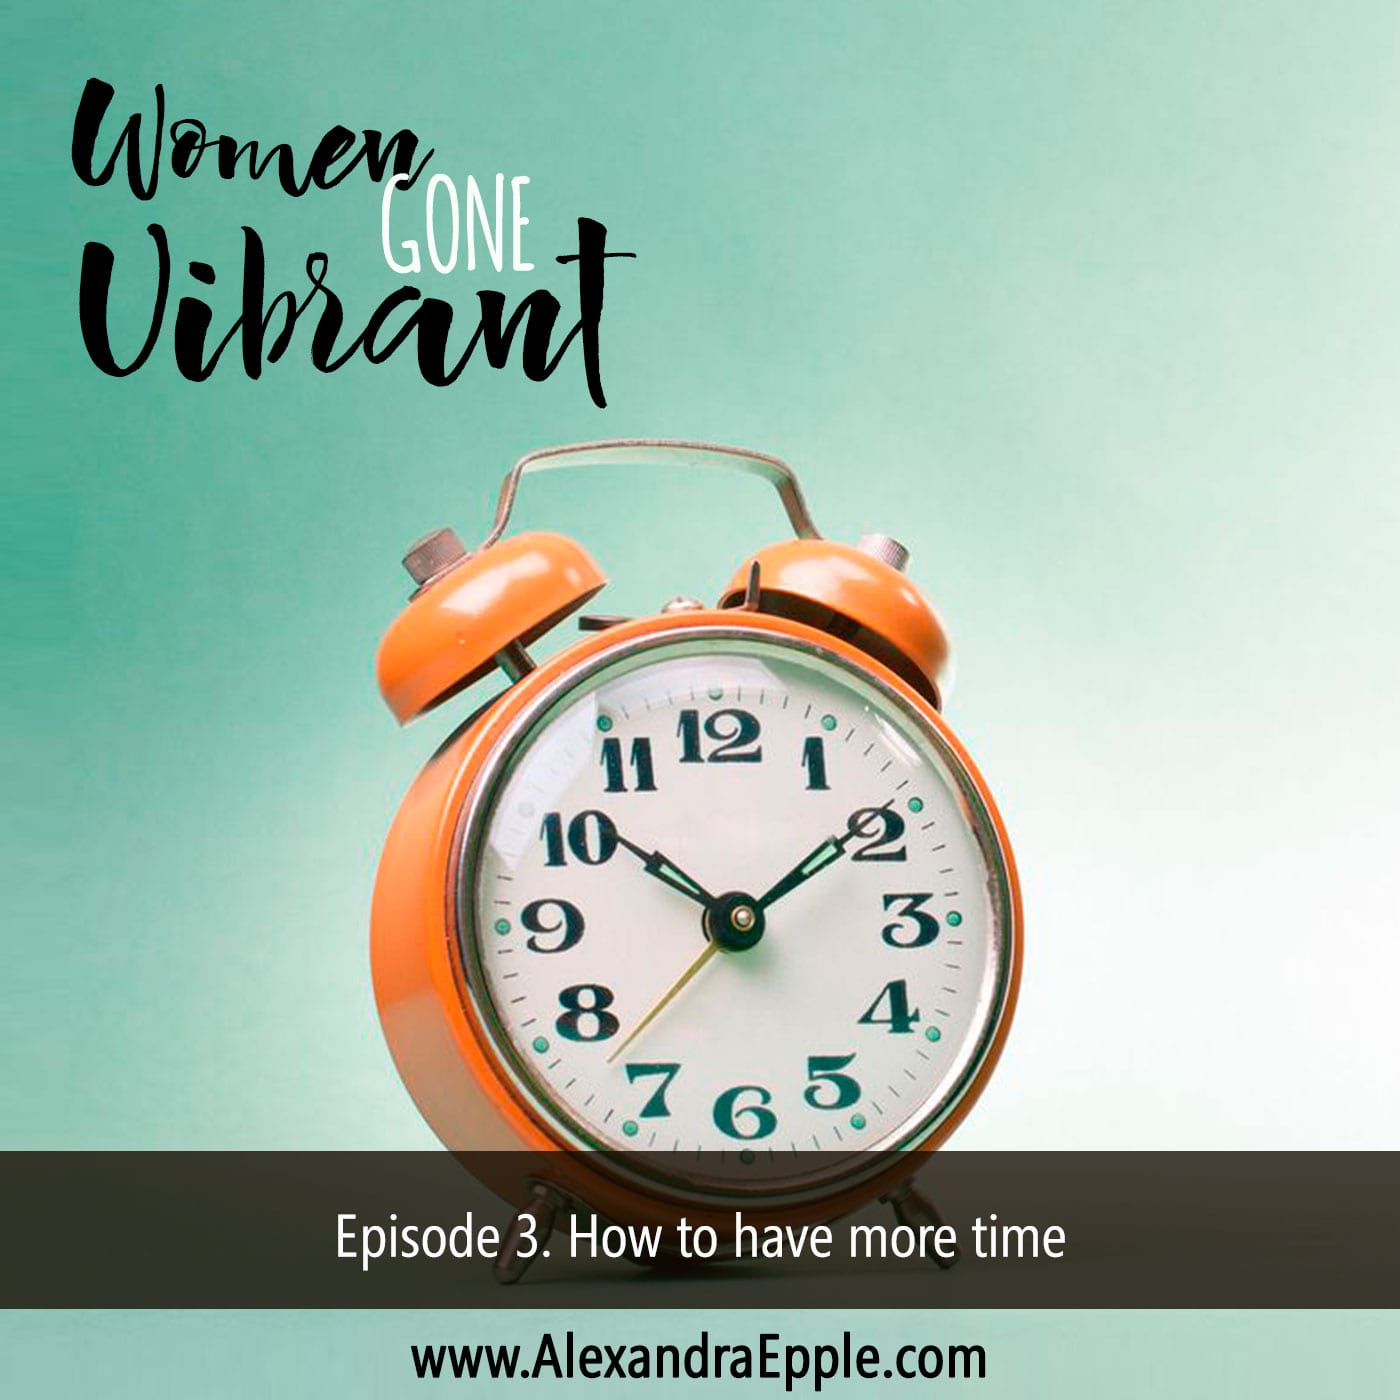 Episode 3. How to have more time